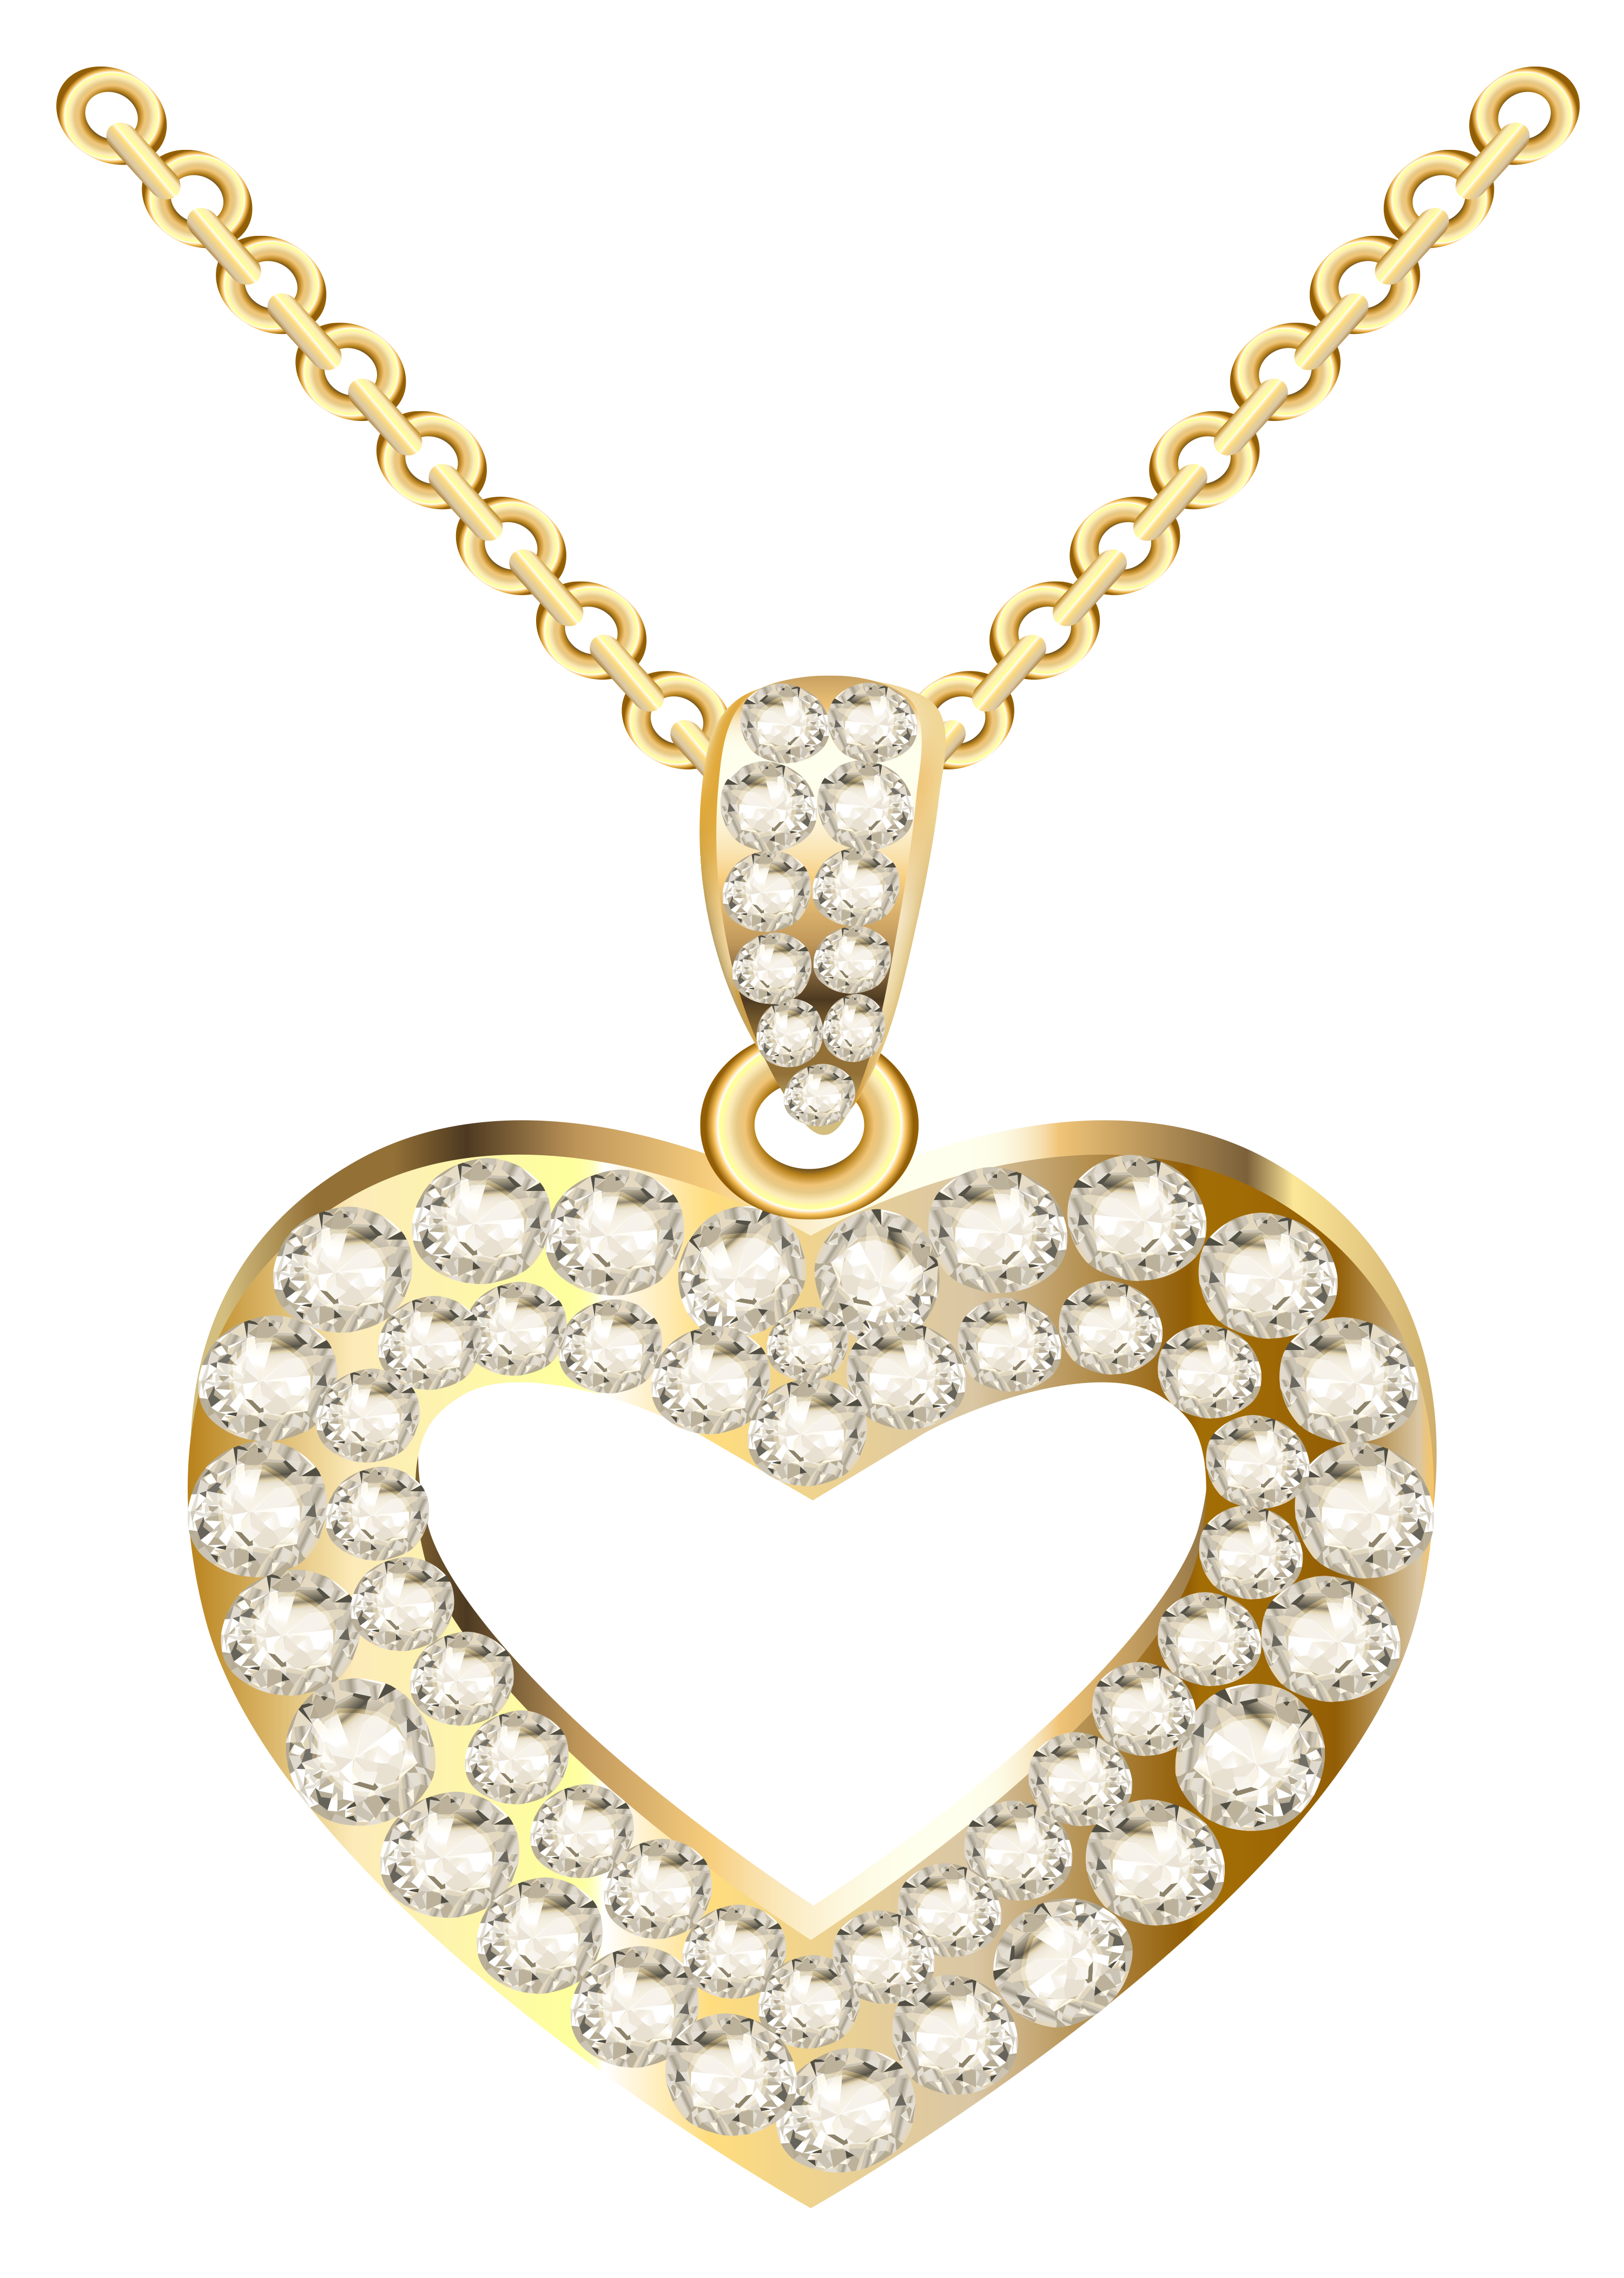 Golden Heart Necklace with Diamonds PNG Clipart.